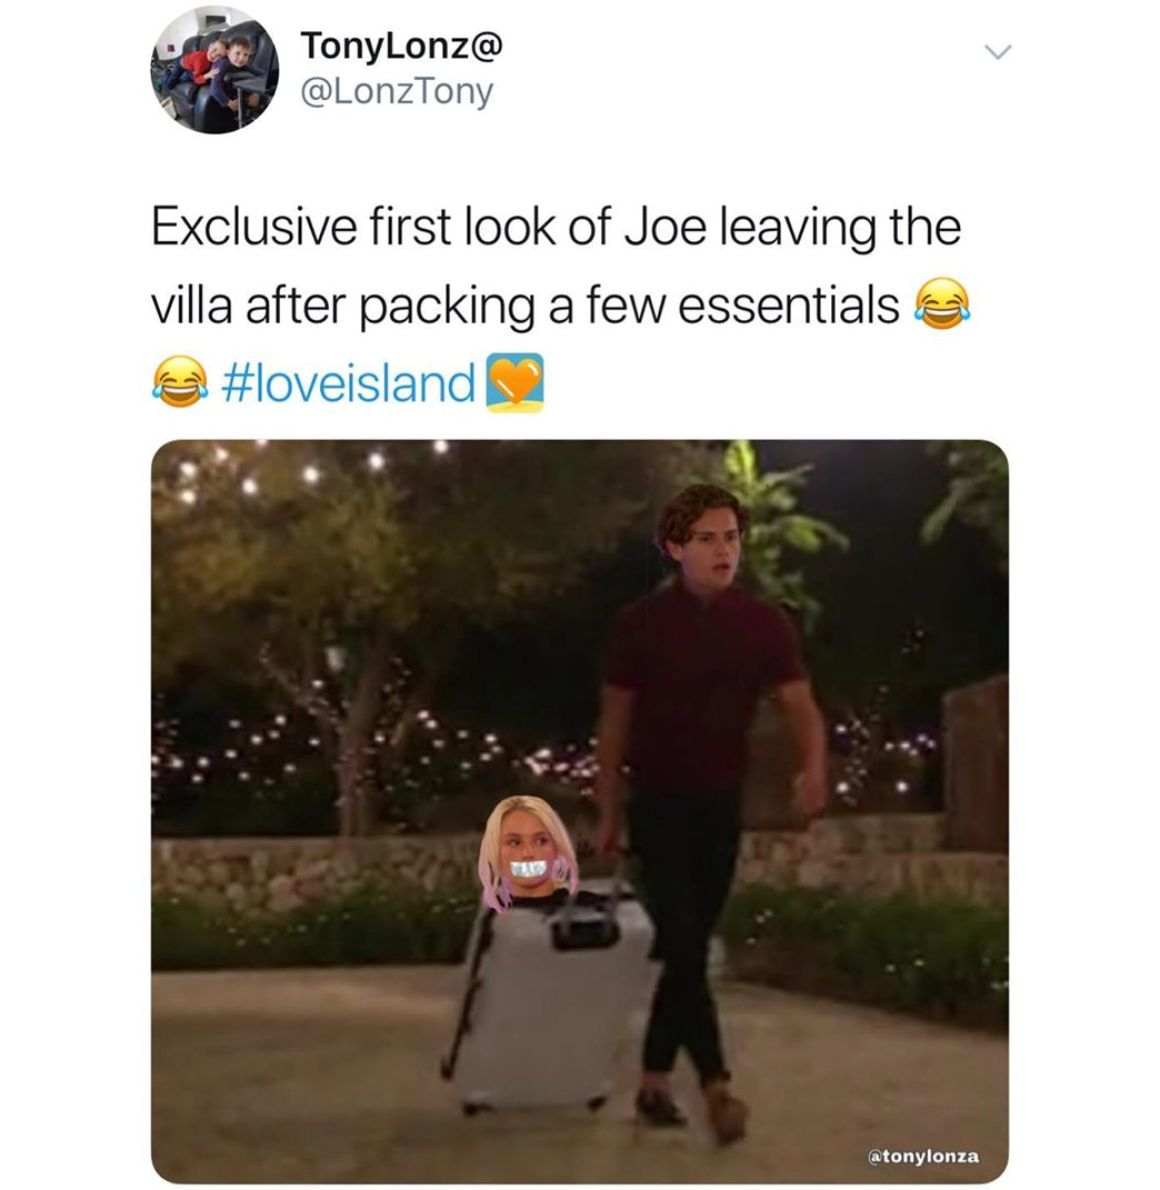 Image may contain: Love Island week two memes, Love Island, memes, reactions, tweet, funny, savage, meme, Joe, Lucie, Text, Clothing, Apparel, Person, Human